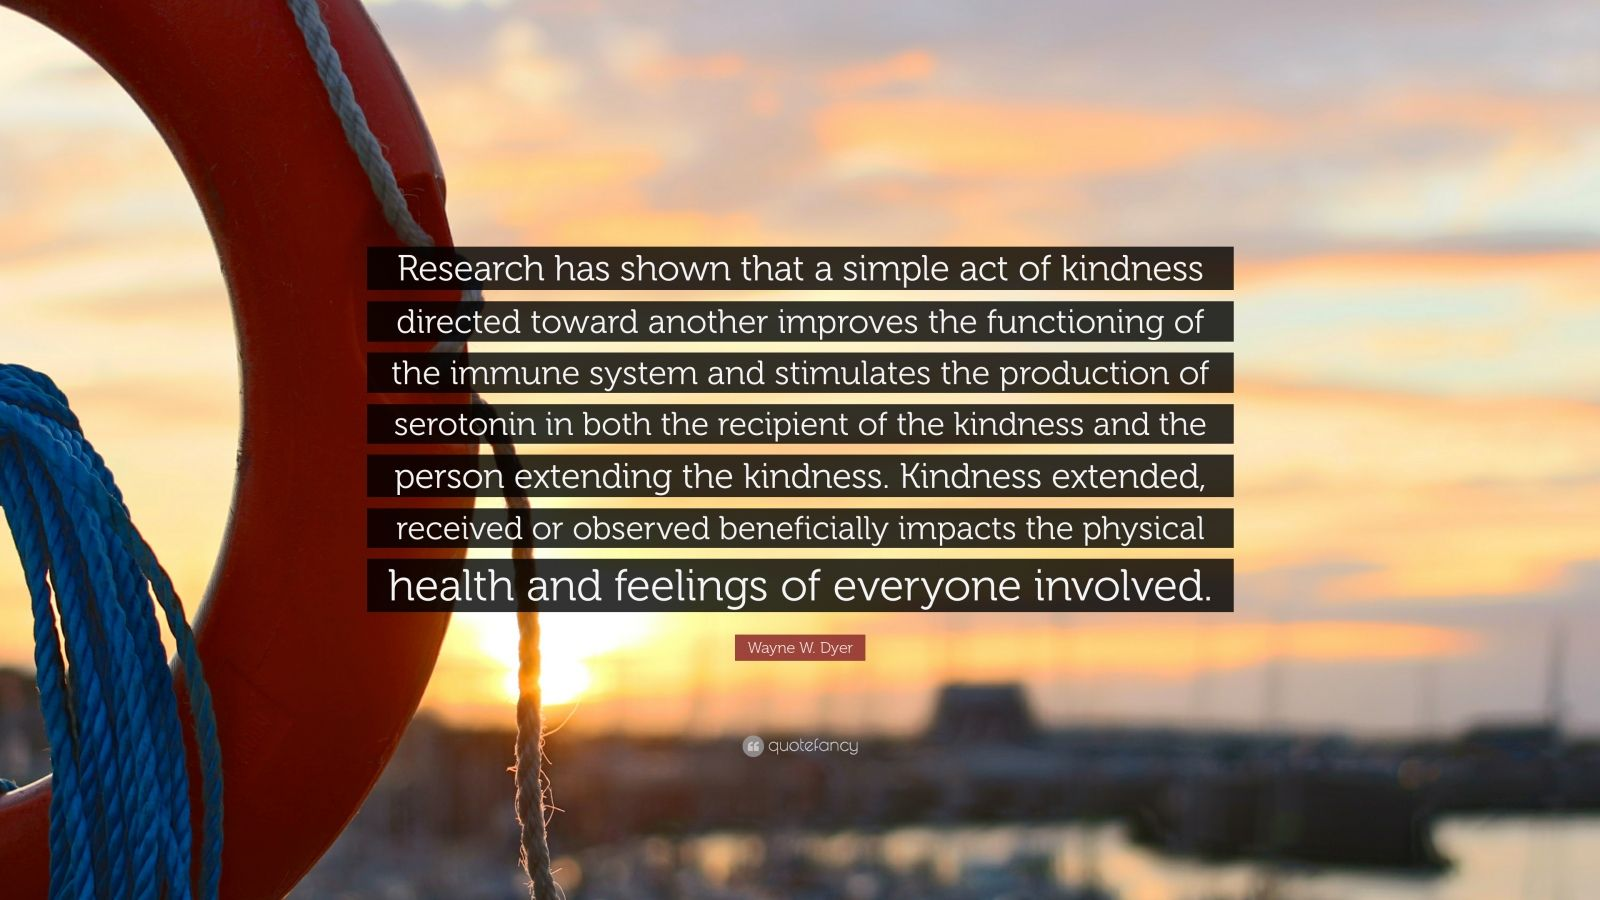 """Wayne W. Dyer Quote: """"Research has shown that a simple act of kindness directed toward another improves the functioning of the immune system and stimulates the production of serotonin in both the recipient of the kindness and the person extending the kindness. Kindness extended, received or observed beneficially impacts the physical health and feelings of everyone involved."""""""